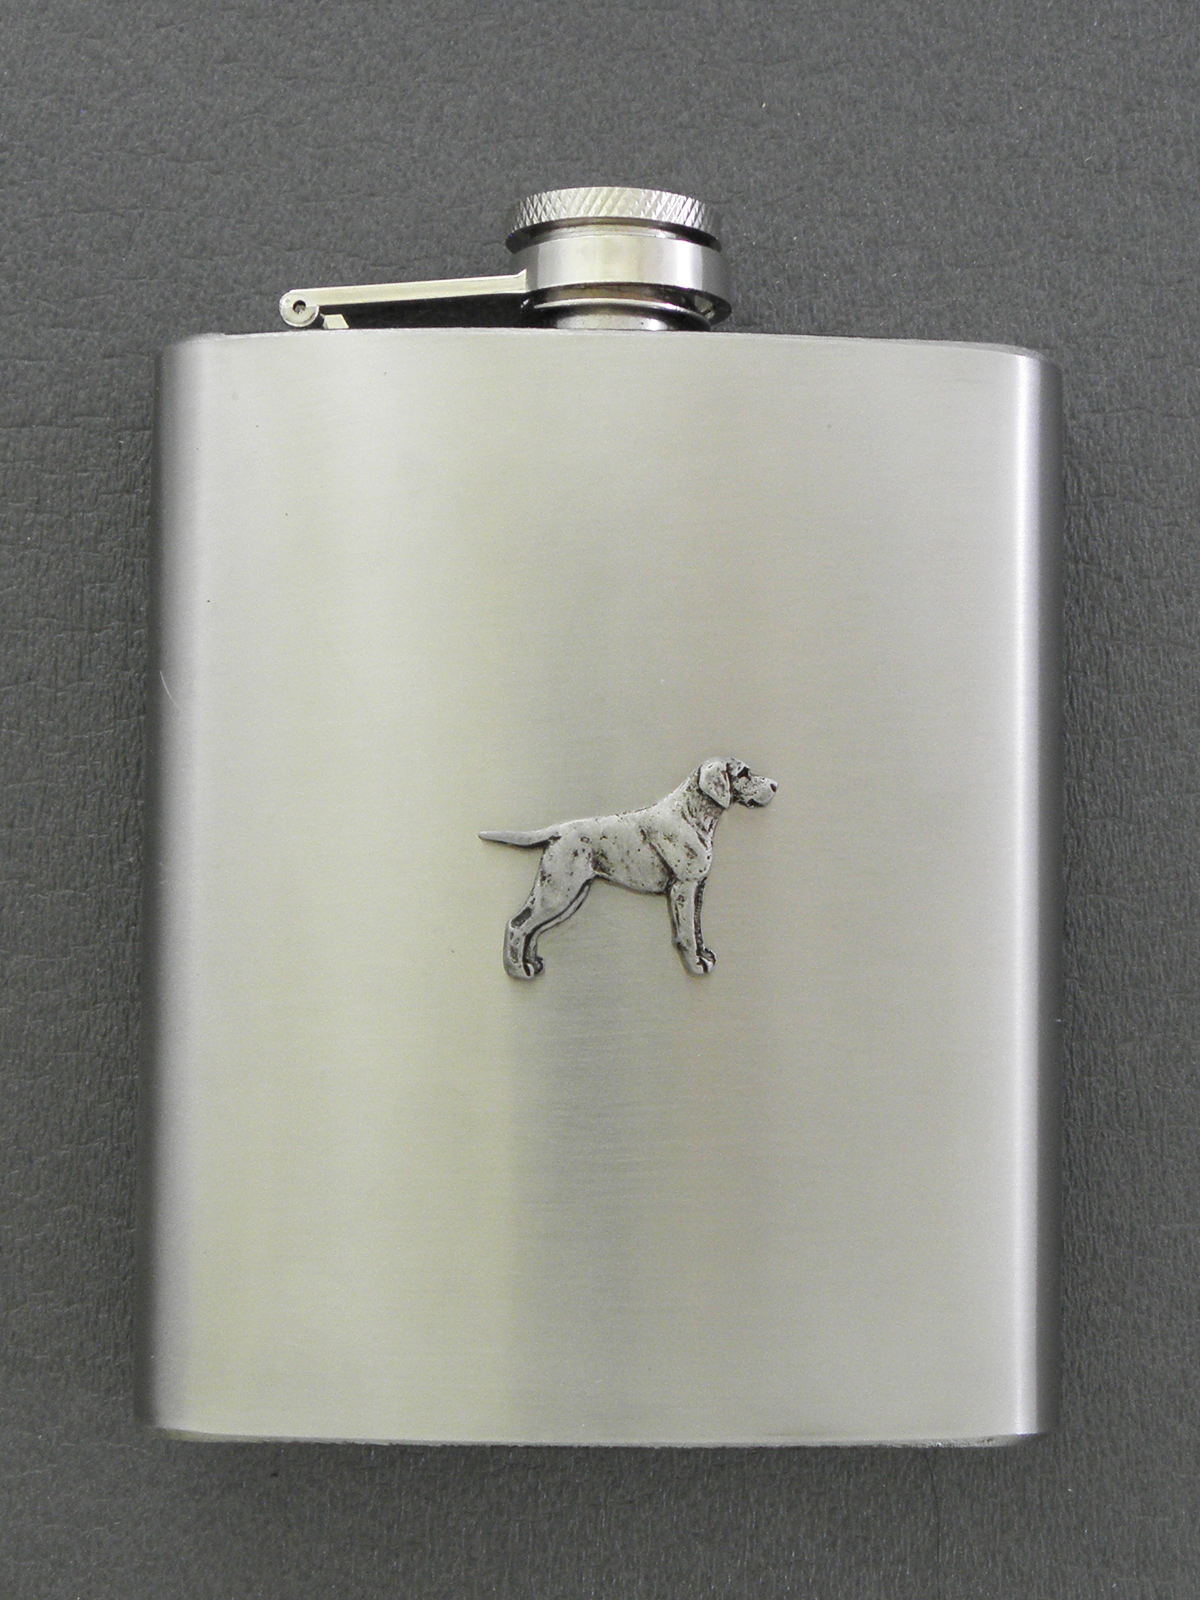 German Shorthaired Pointer - Hip Flask Figure